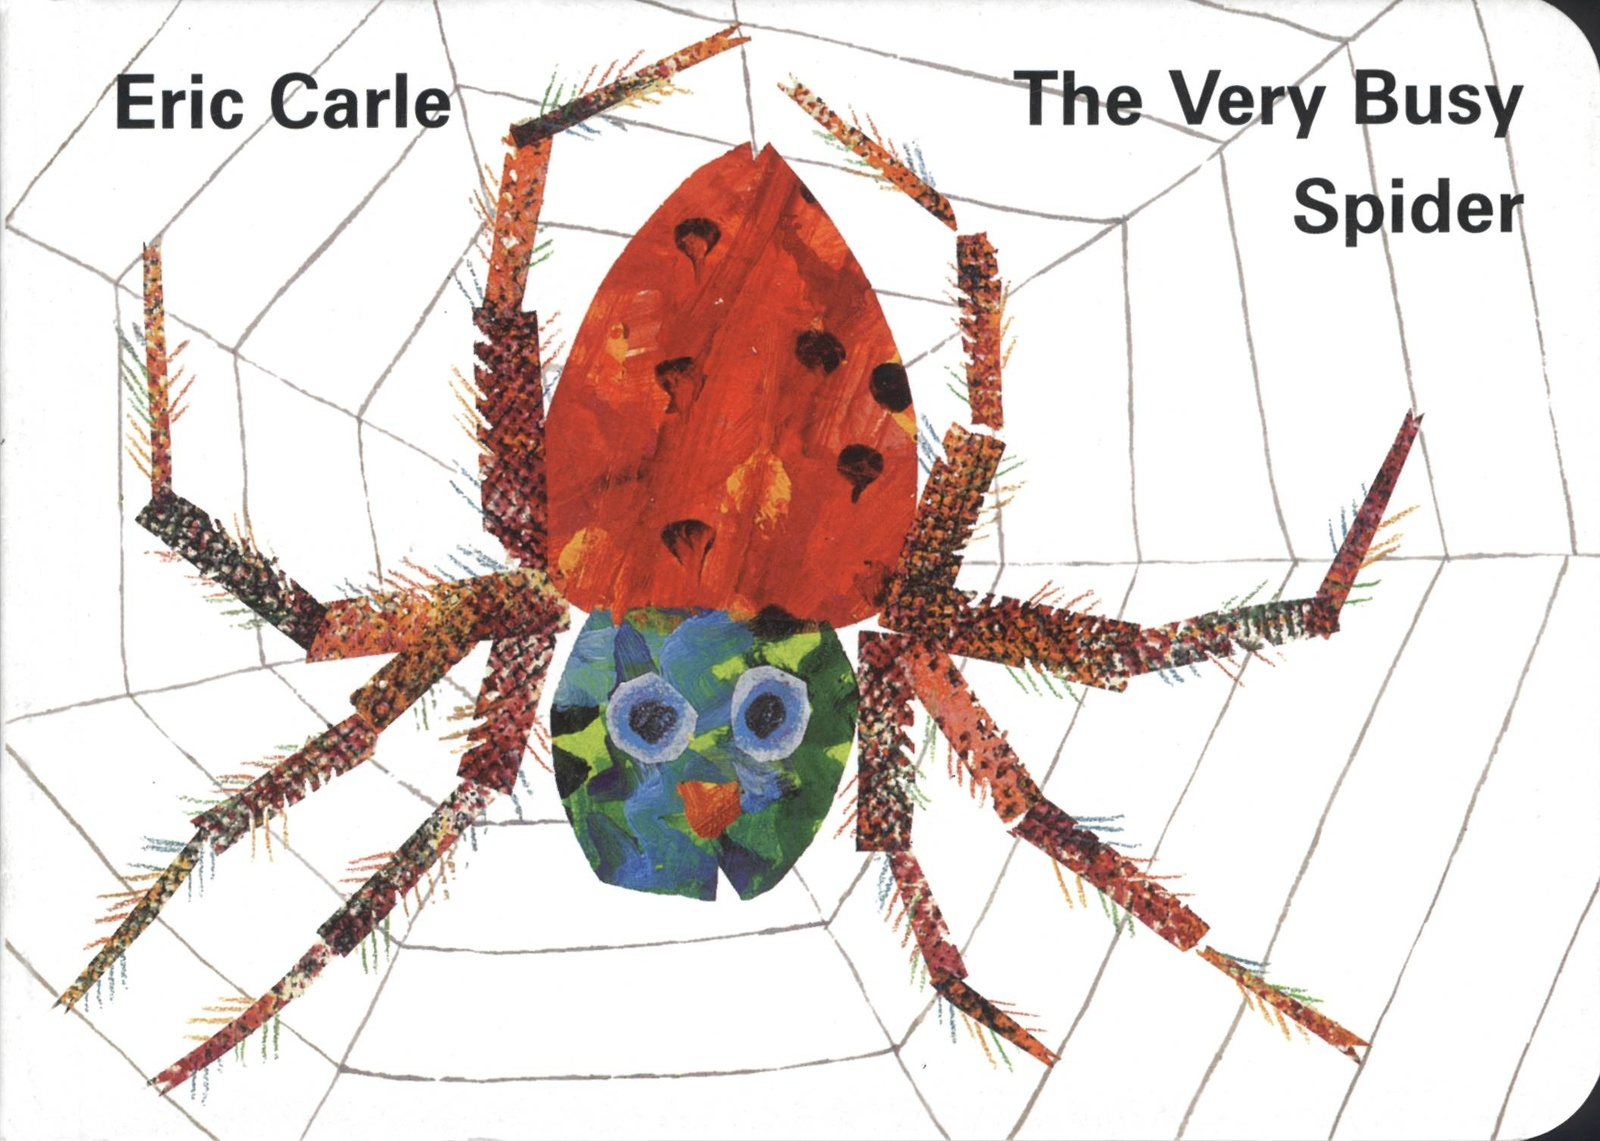 The Very Busy Spider by Eric Carle image